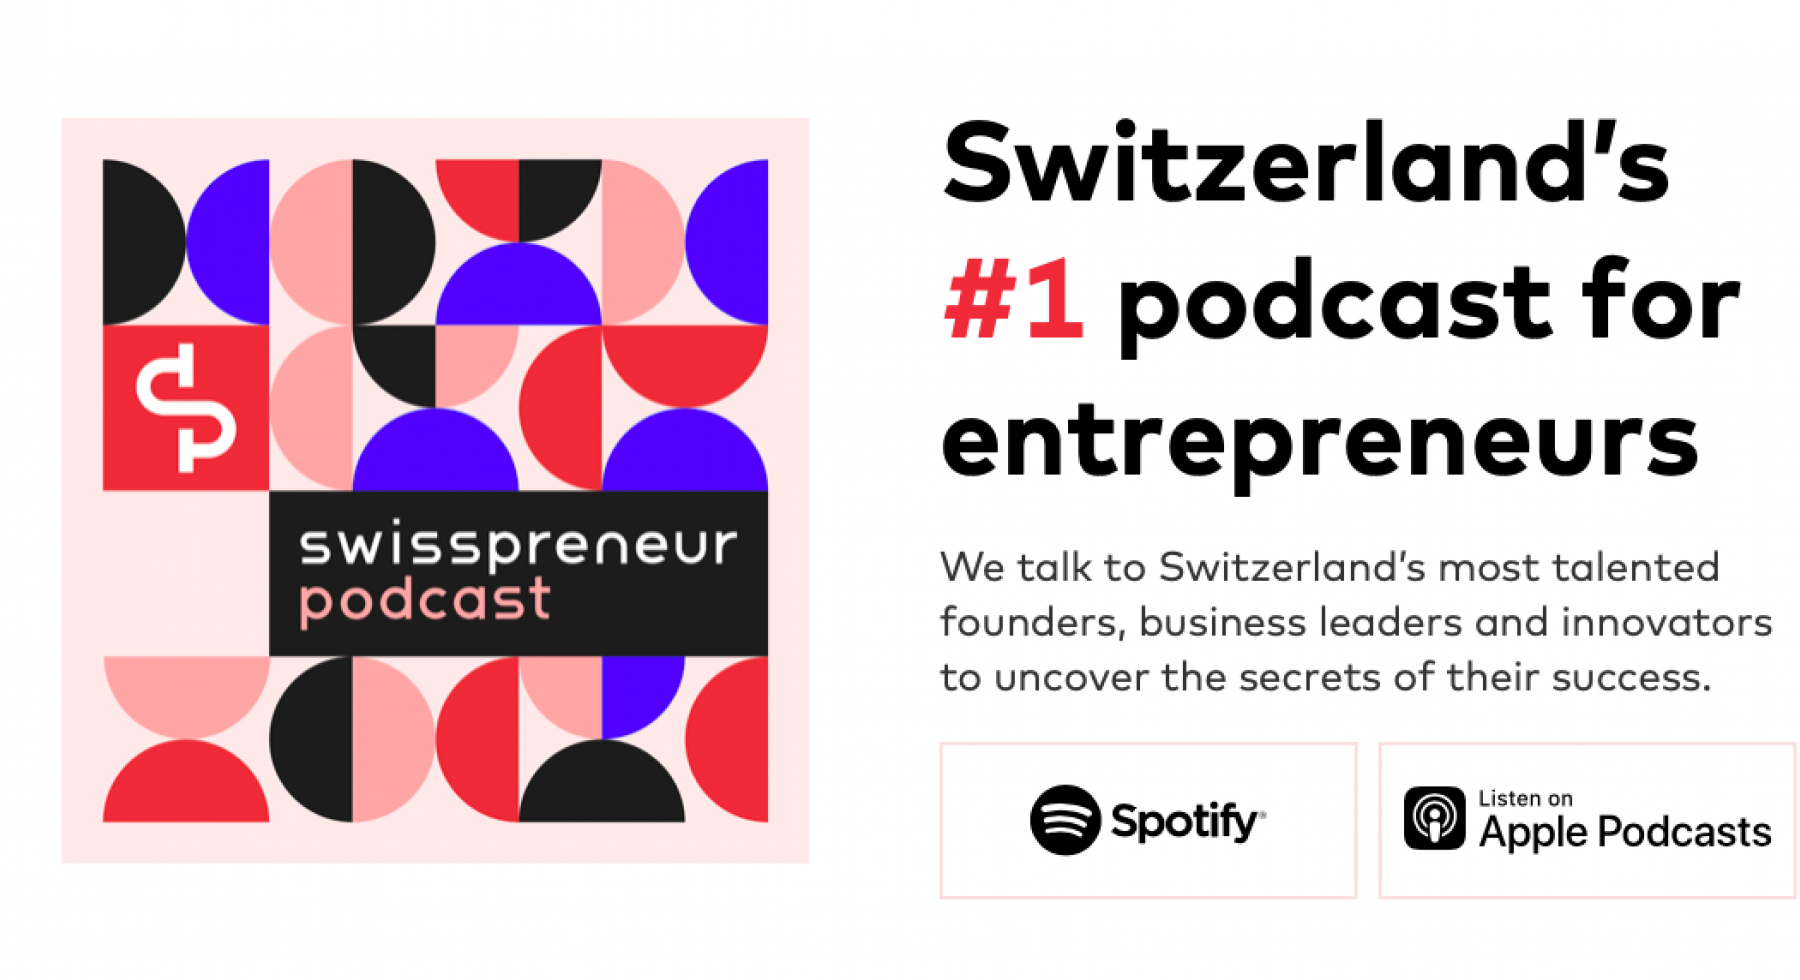 swisspreneur Podcast